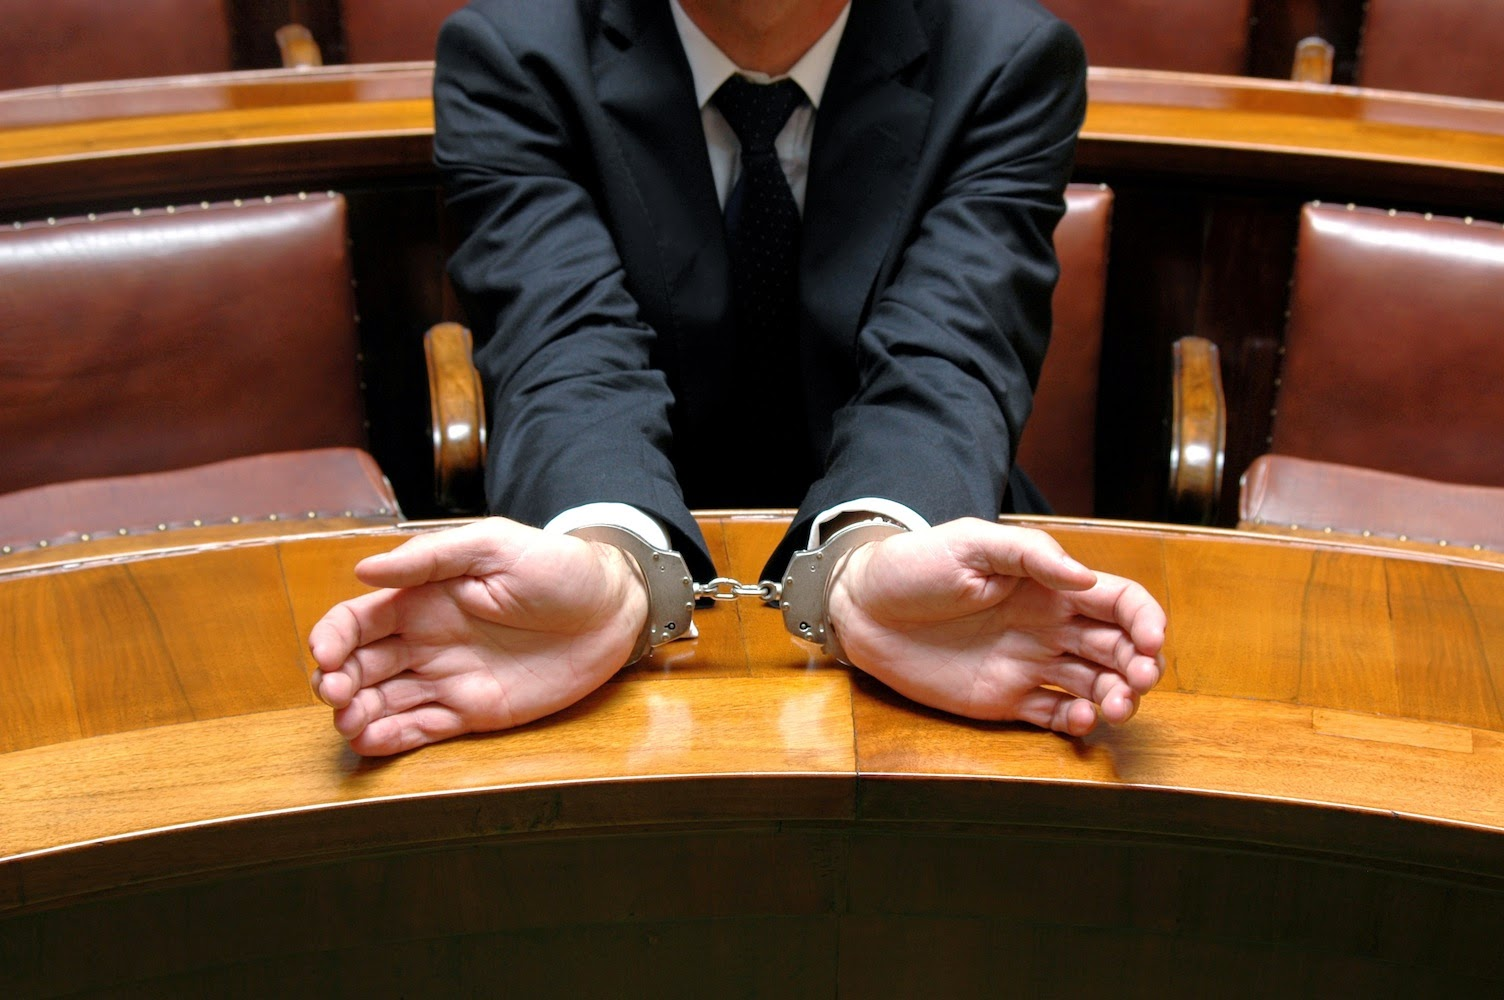 Find Yourself Tensed Free From Perfect Criminal Lawyers Gold Coast